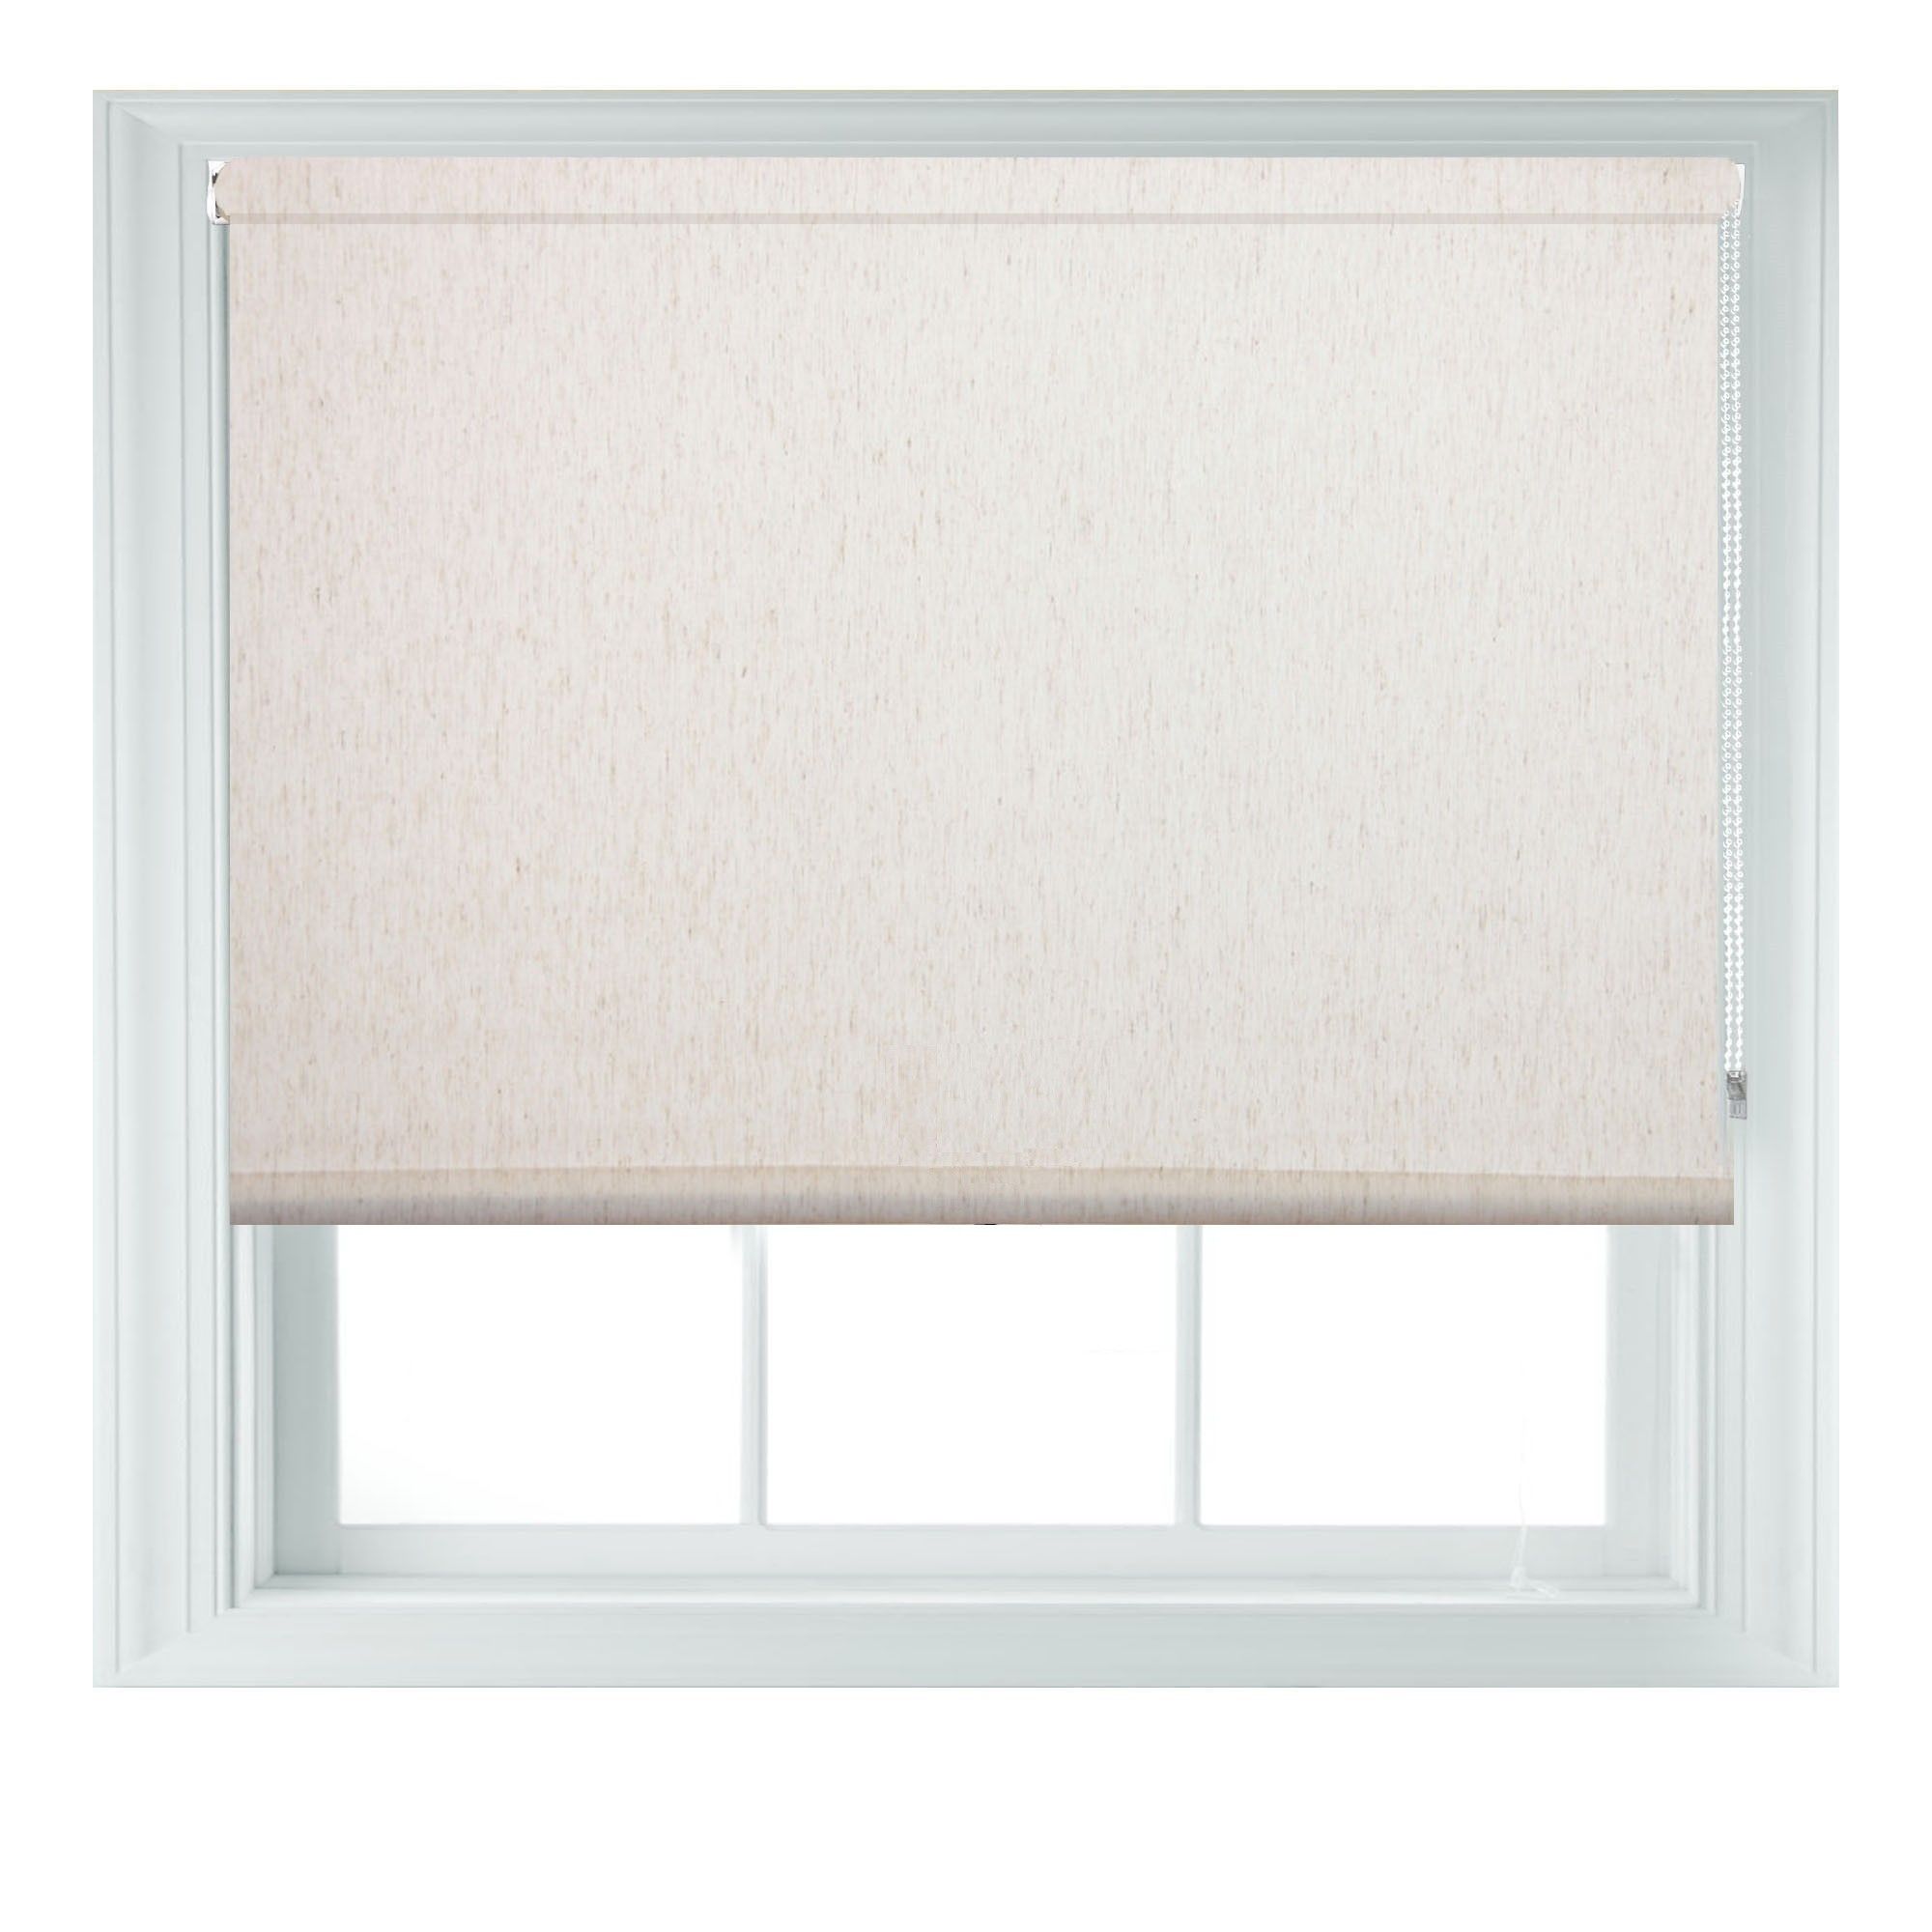 Natural Beige Linen Roller Blinds Quality Window Blind Free Cut Intended For Natural Linen Roman Blinds (Image 9 of 15)